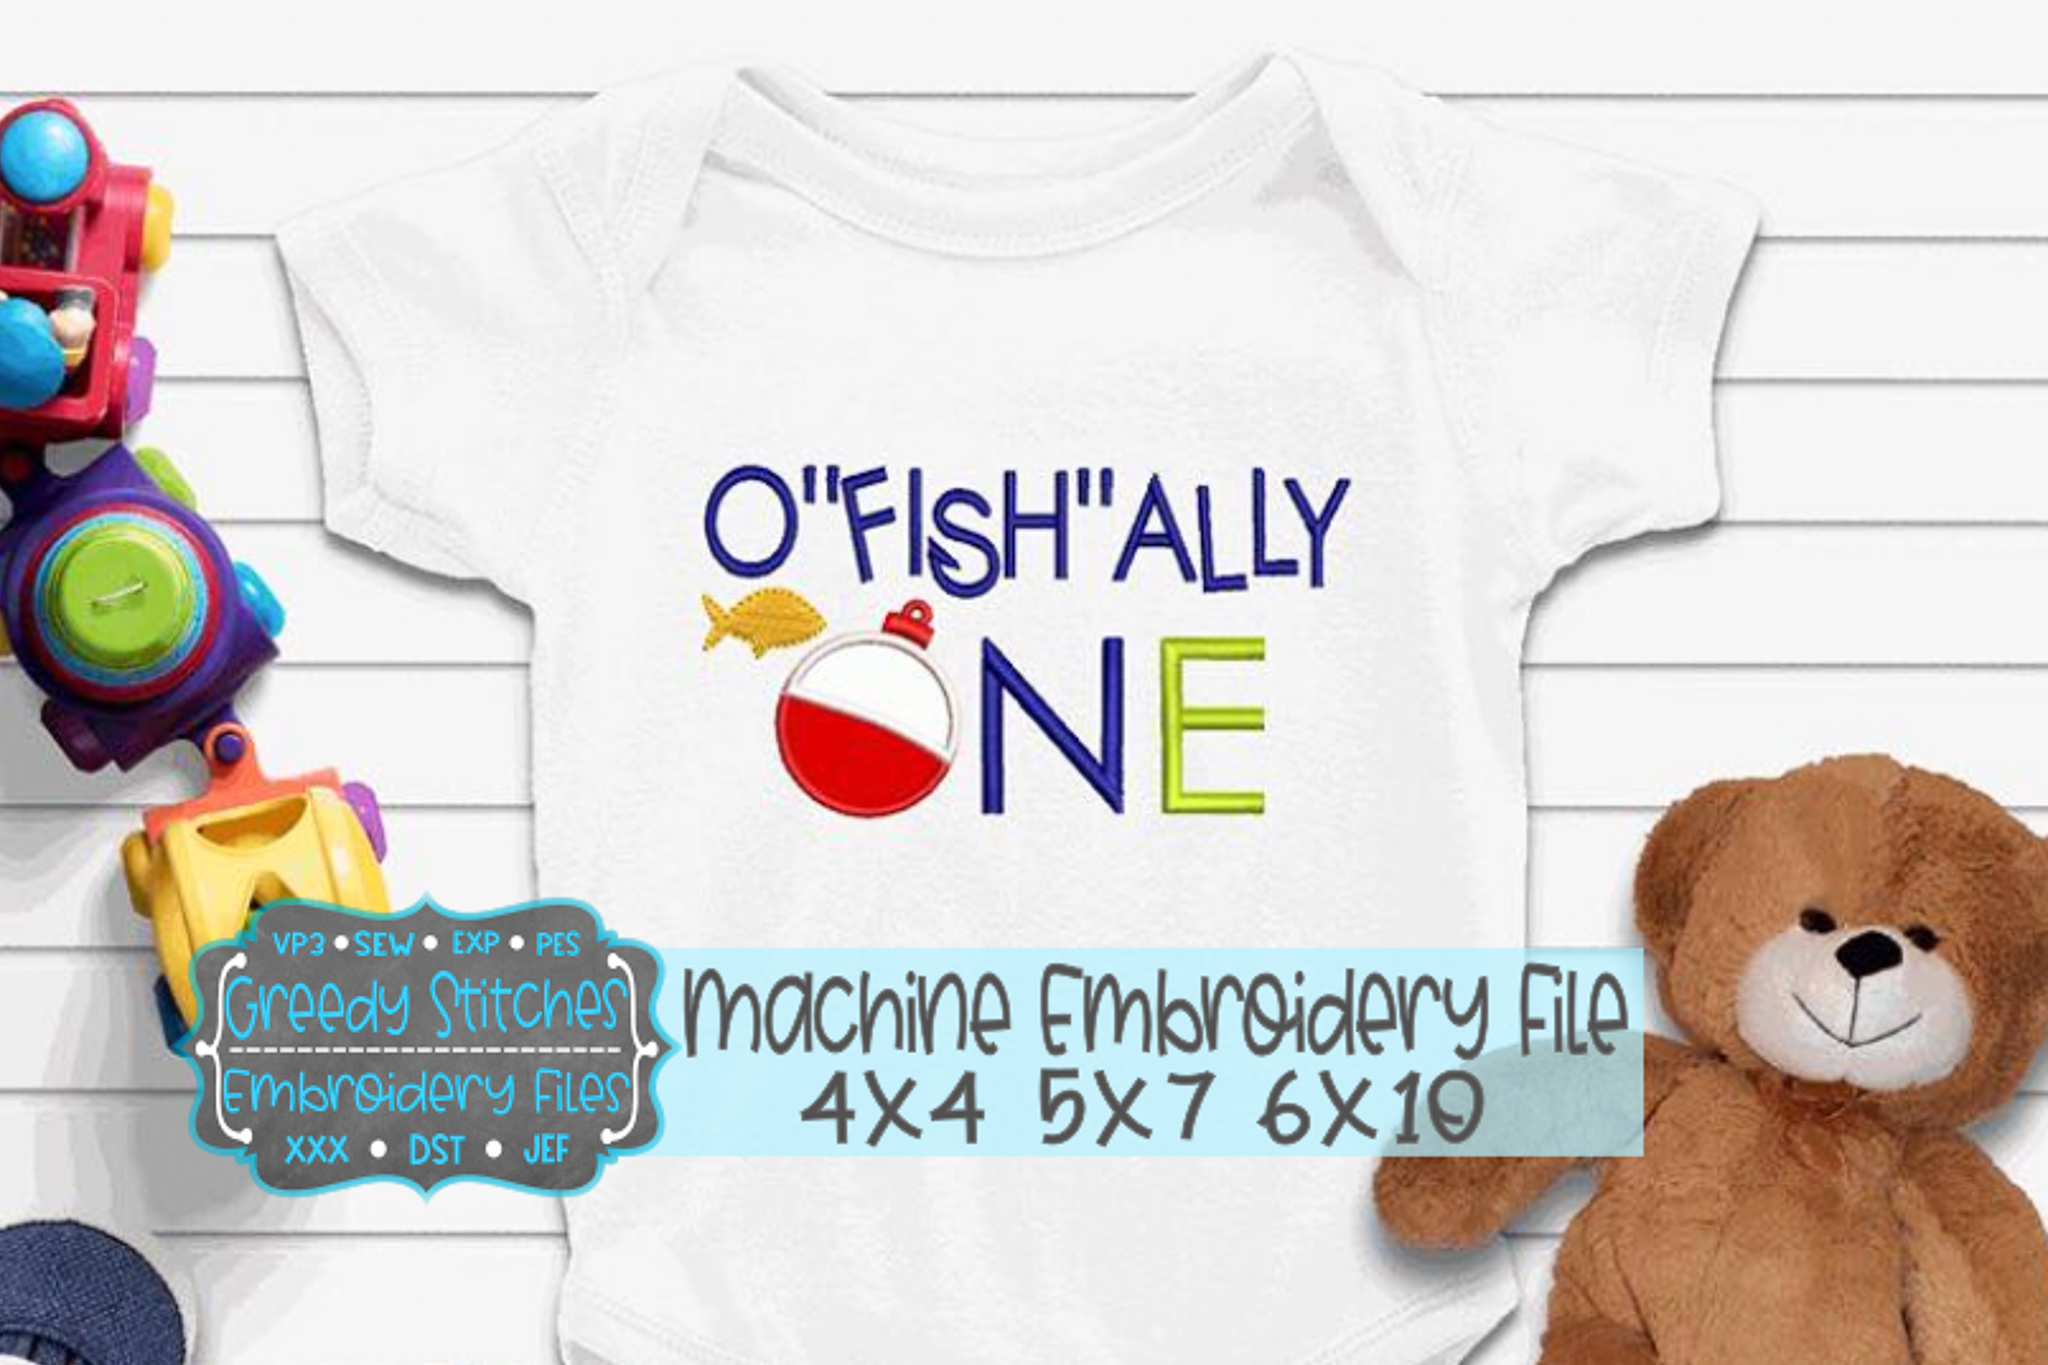 O'FISH'ALLY ONE Machne Embroidery Files example image 5